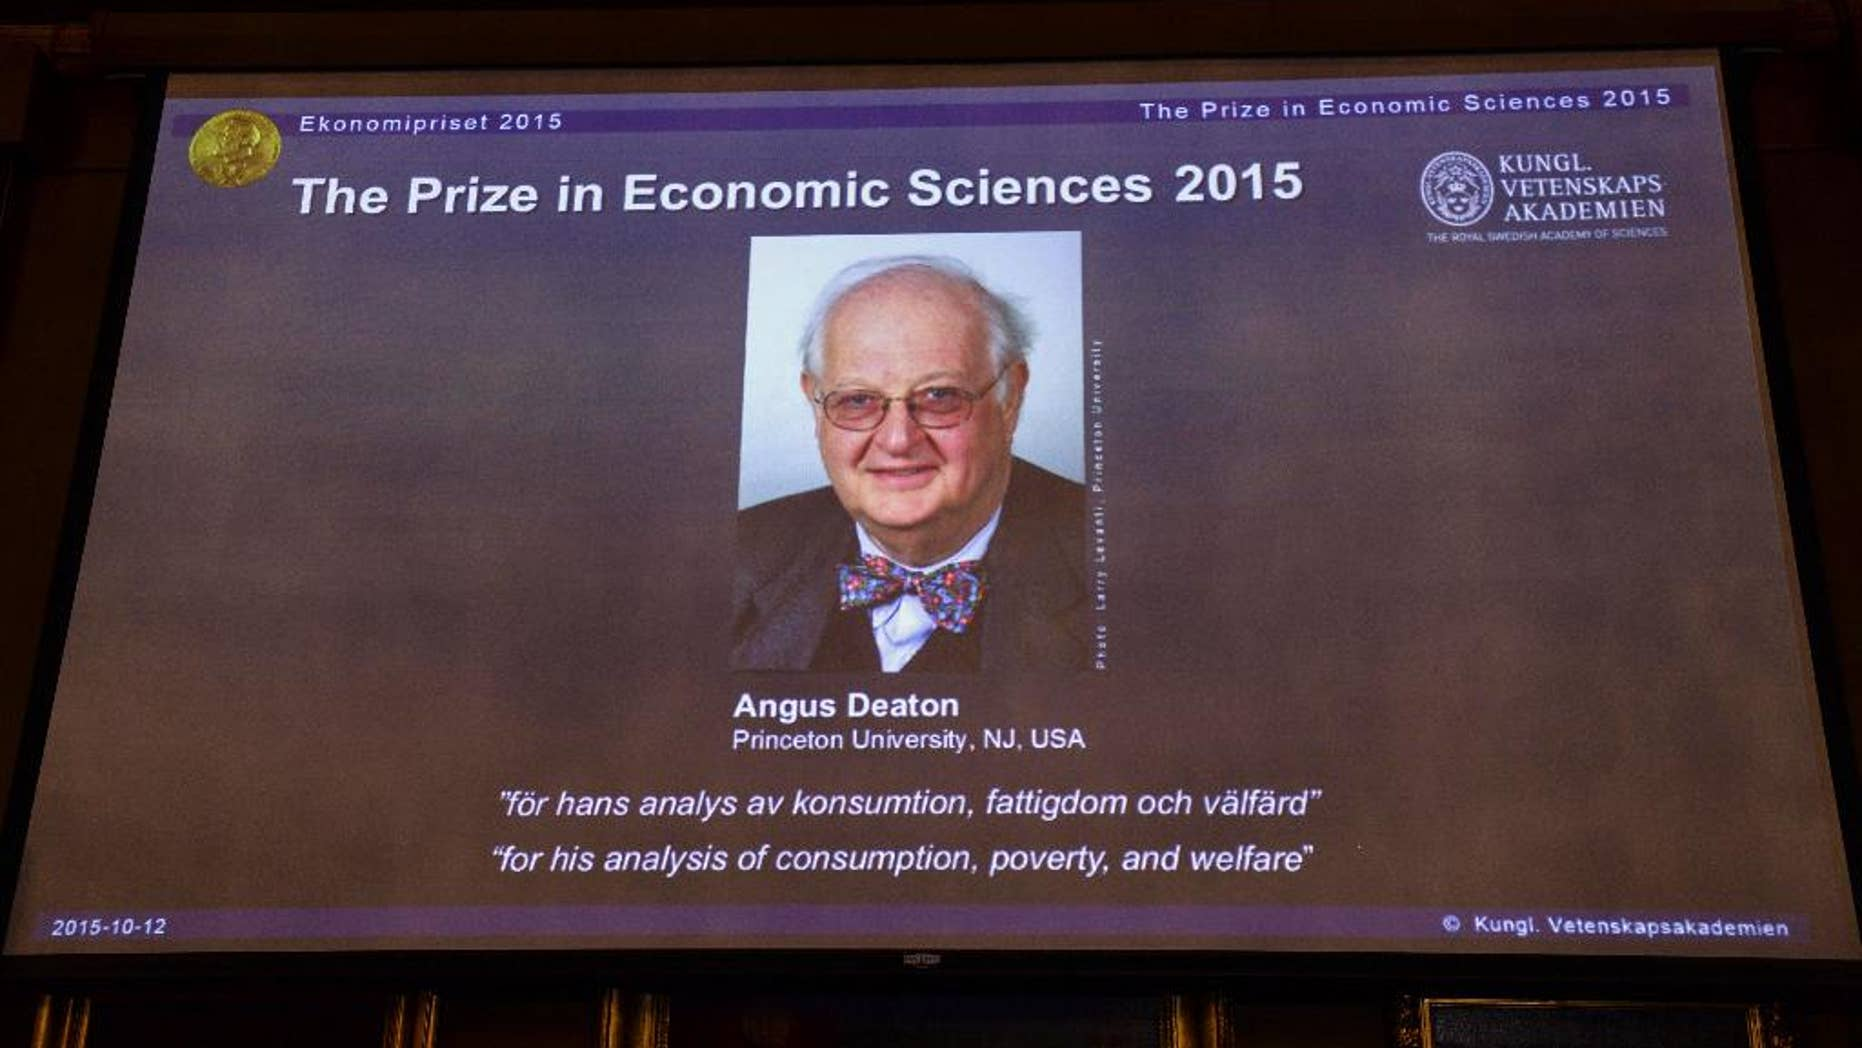 """A view of the screen showing an image of Professor Angus Deaton, winner of the 2015 Sveriges Riksbank Prize in Economic Sciences in Memory of Alfred Nobel, as the Permanent Secretary for the Royal Swedish Academy of Sciences addresses a press conference to announce the winner of the prize, at the Royal Swedish Academy of Science, in Stockholm, Sweden, Monday, Oct. 12, 2015. Scottish economist Angus Deaton has won the Nobel memorial prize in economic sciences for """"his analysis of consumption, poverty, and welfare,"""" the Royal Swedish Academy of Sciences said Monday.  (Maja Suslin/TT News Agency via AP)"""